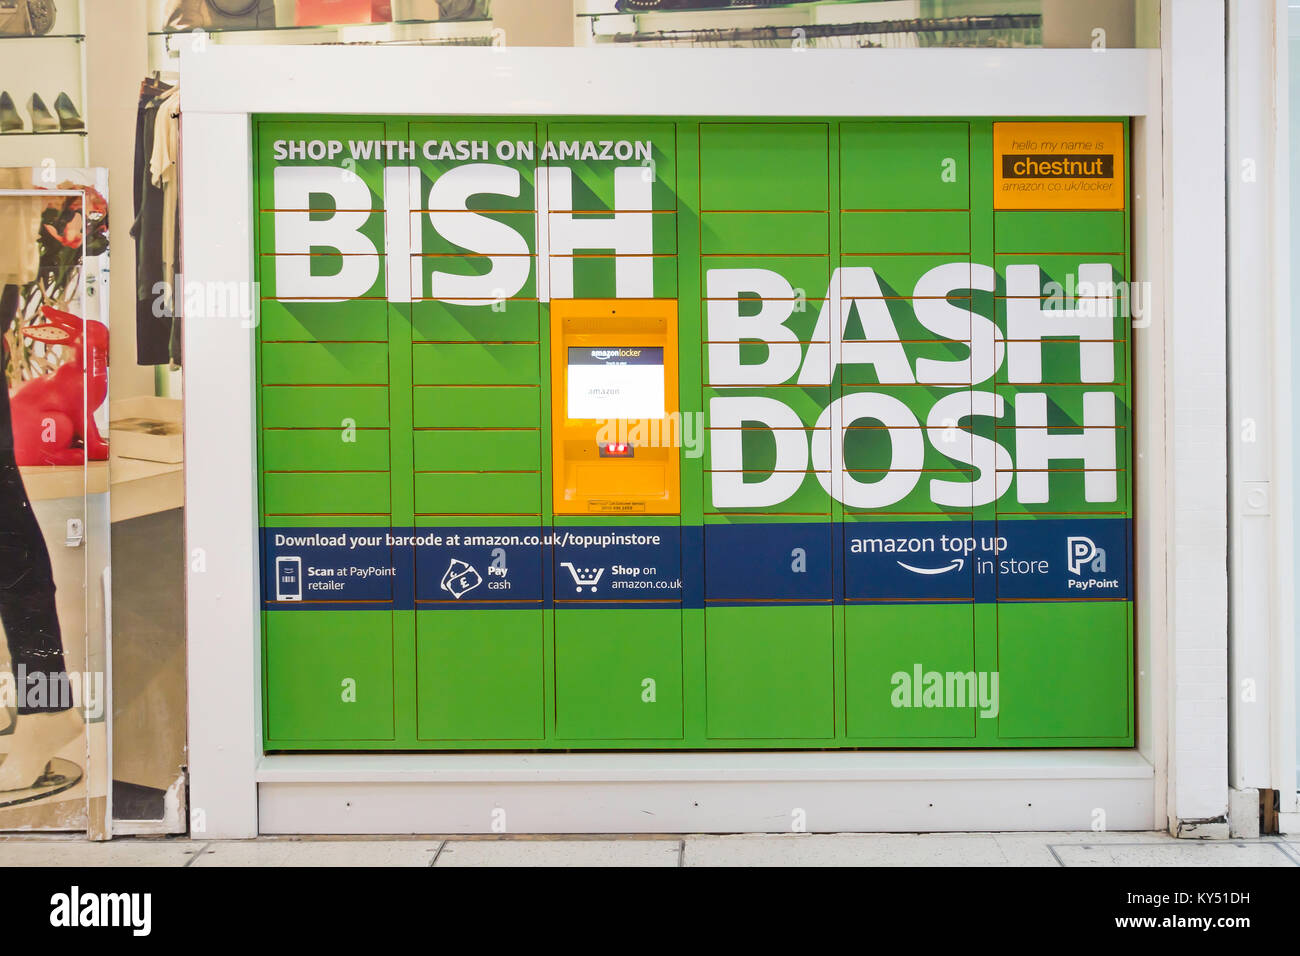 Chestnut an Amazon Locker for delivery of goods ordered on line with instructions how to pay for the goods with - Stock Image